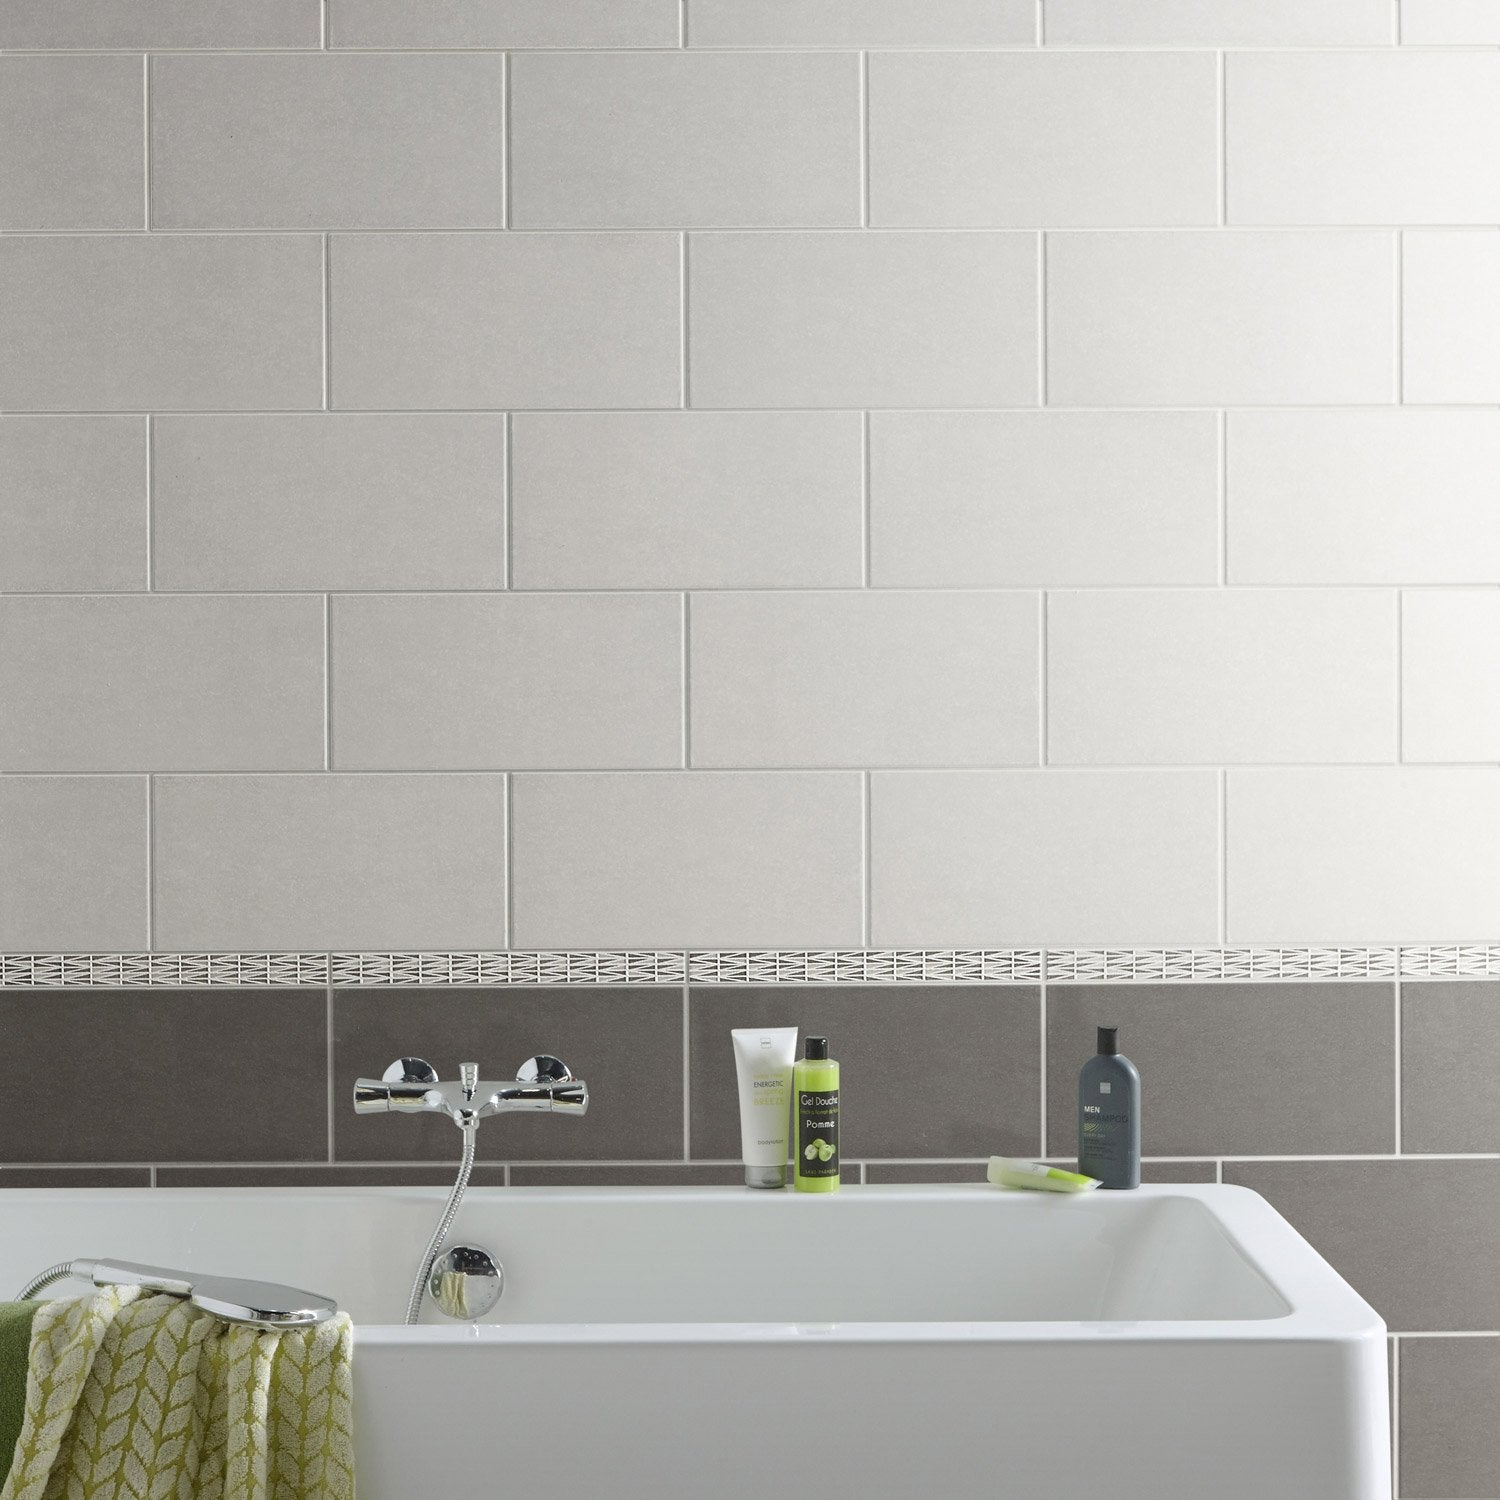 Fa ence mur anthracite trend x cm leroy merlin for Faience mur